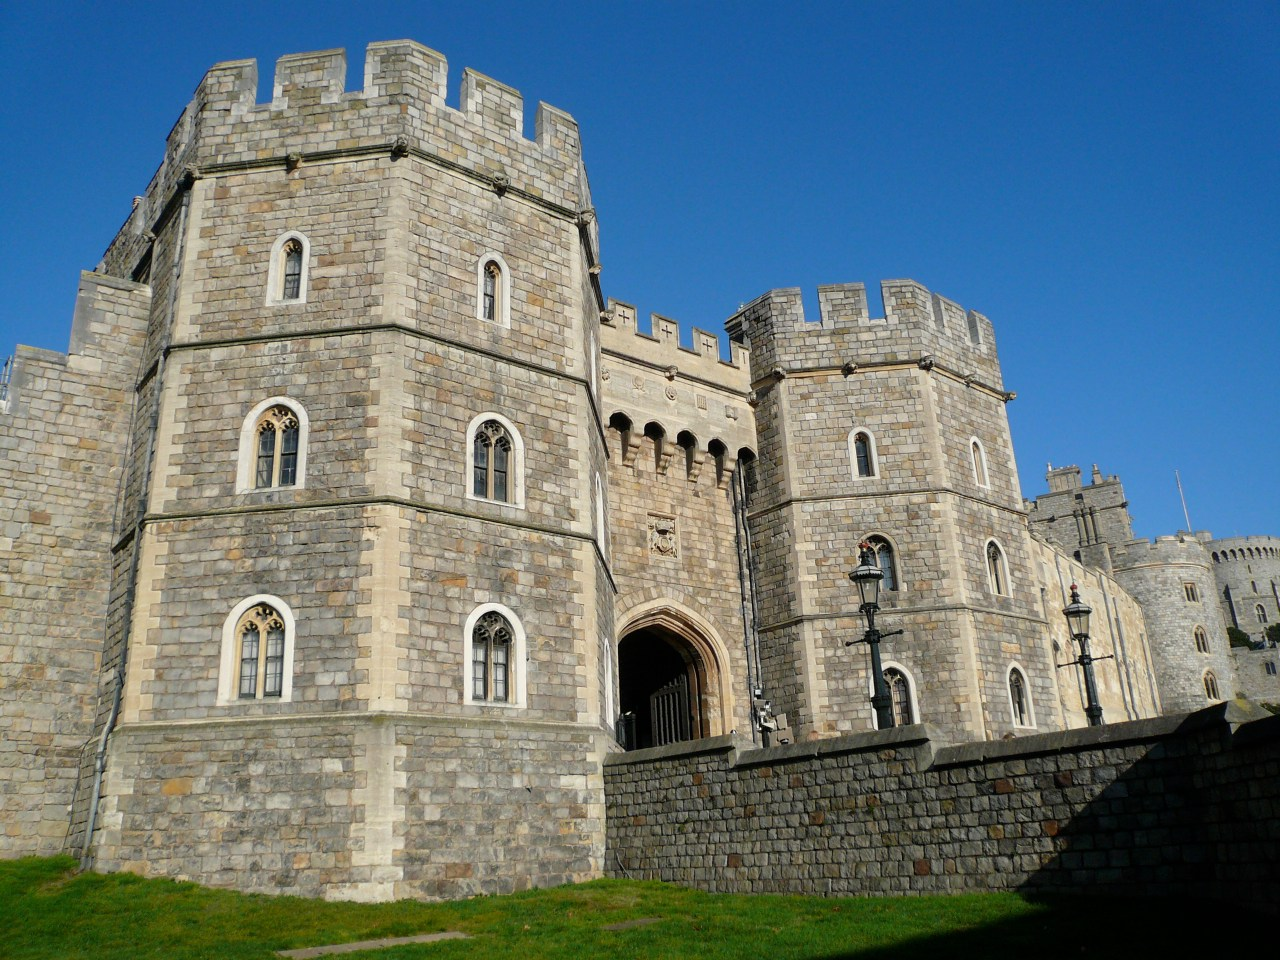 Henry VIII Gateway at Windsor Castle